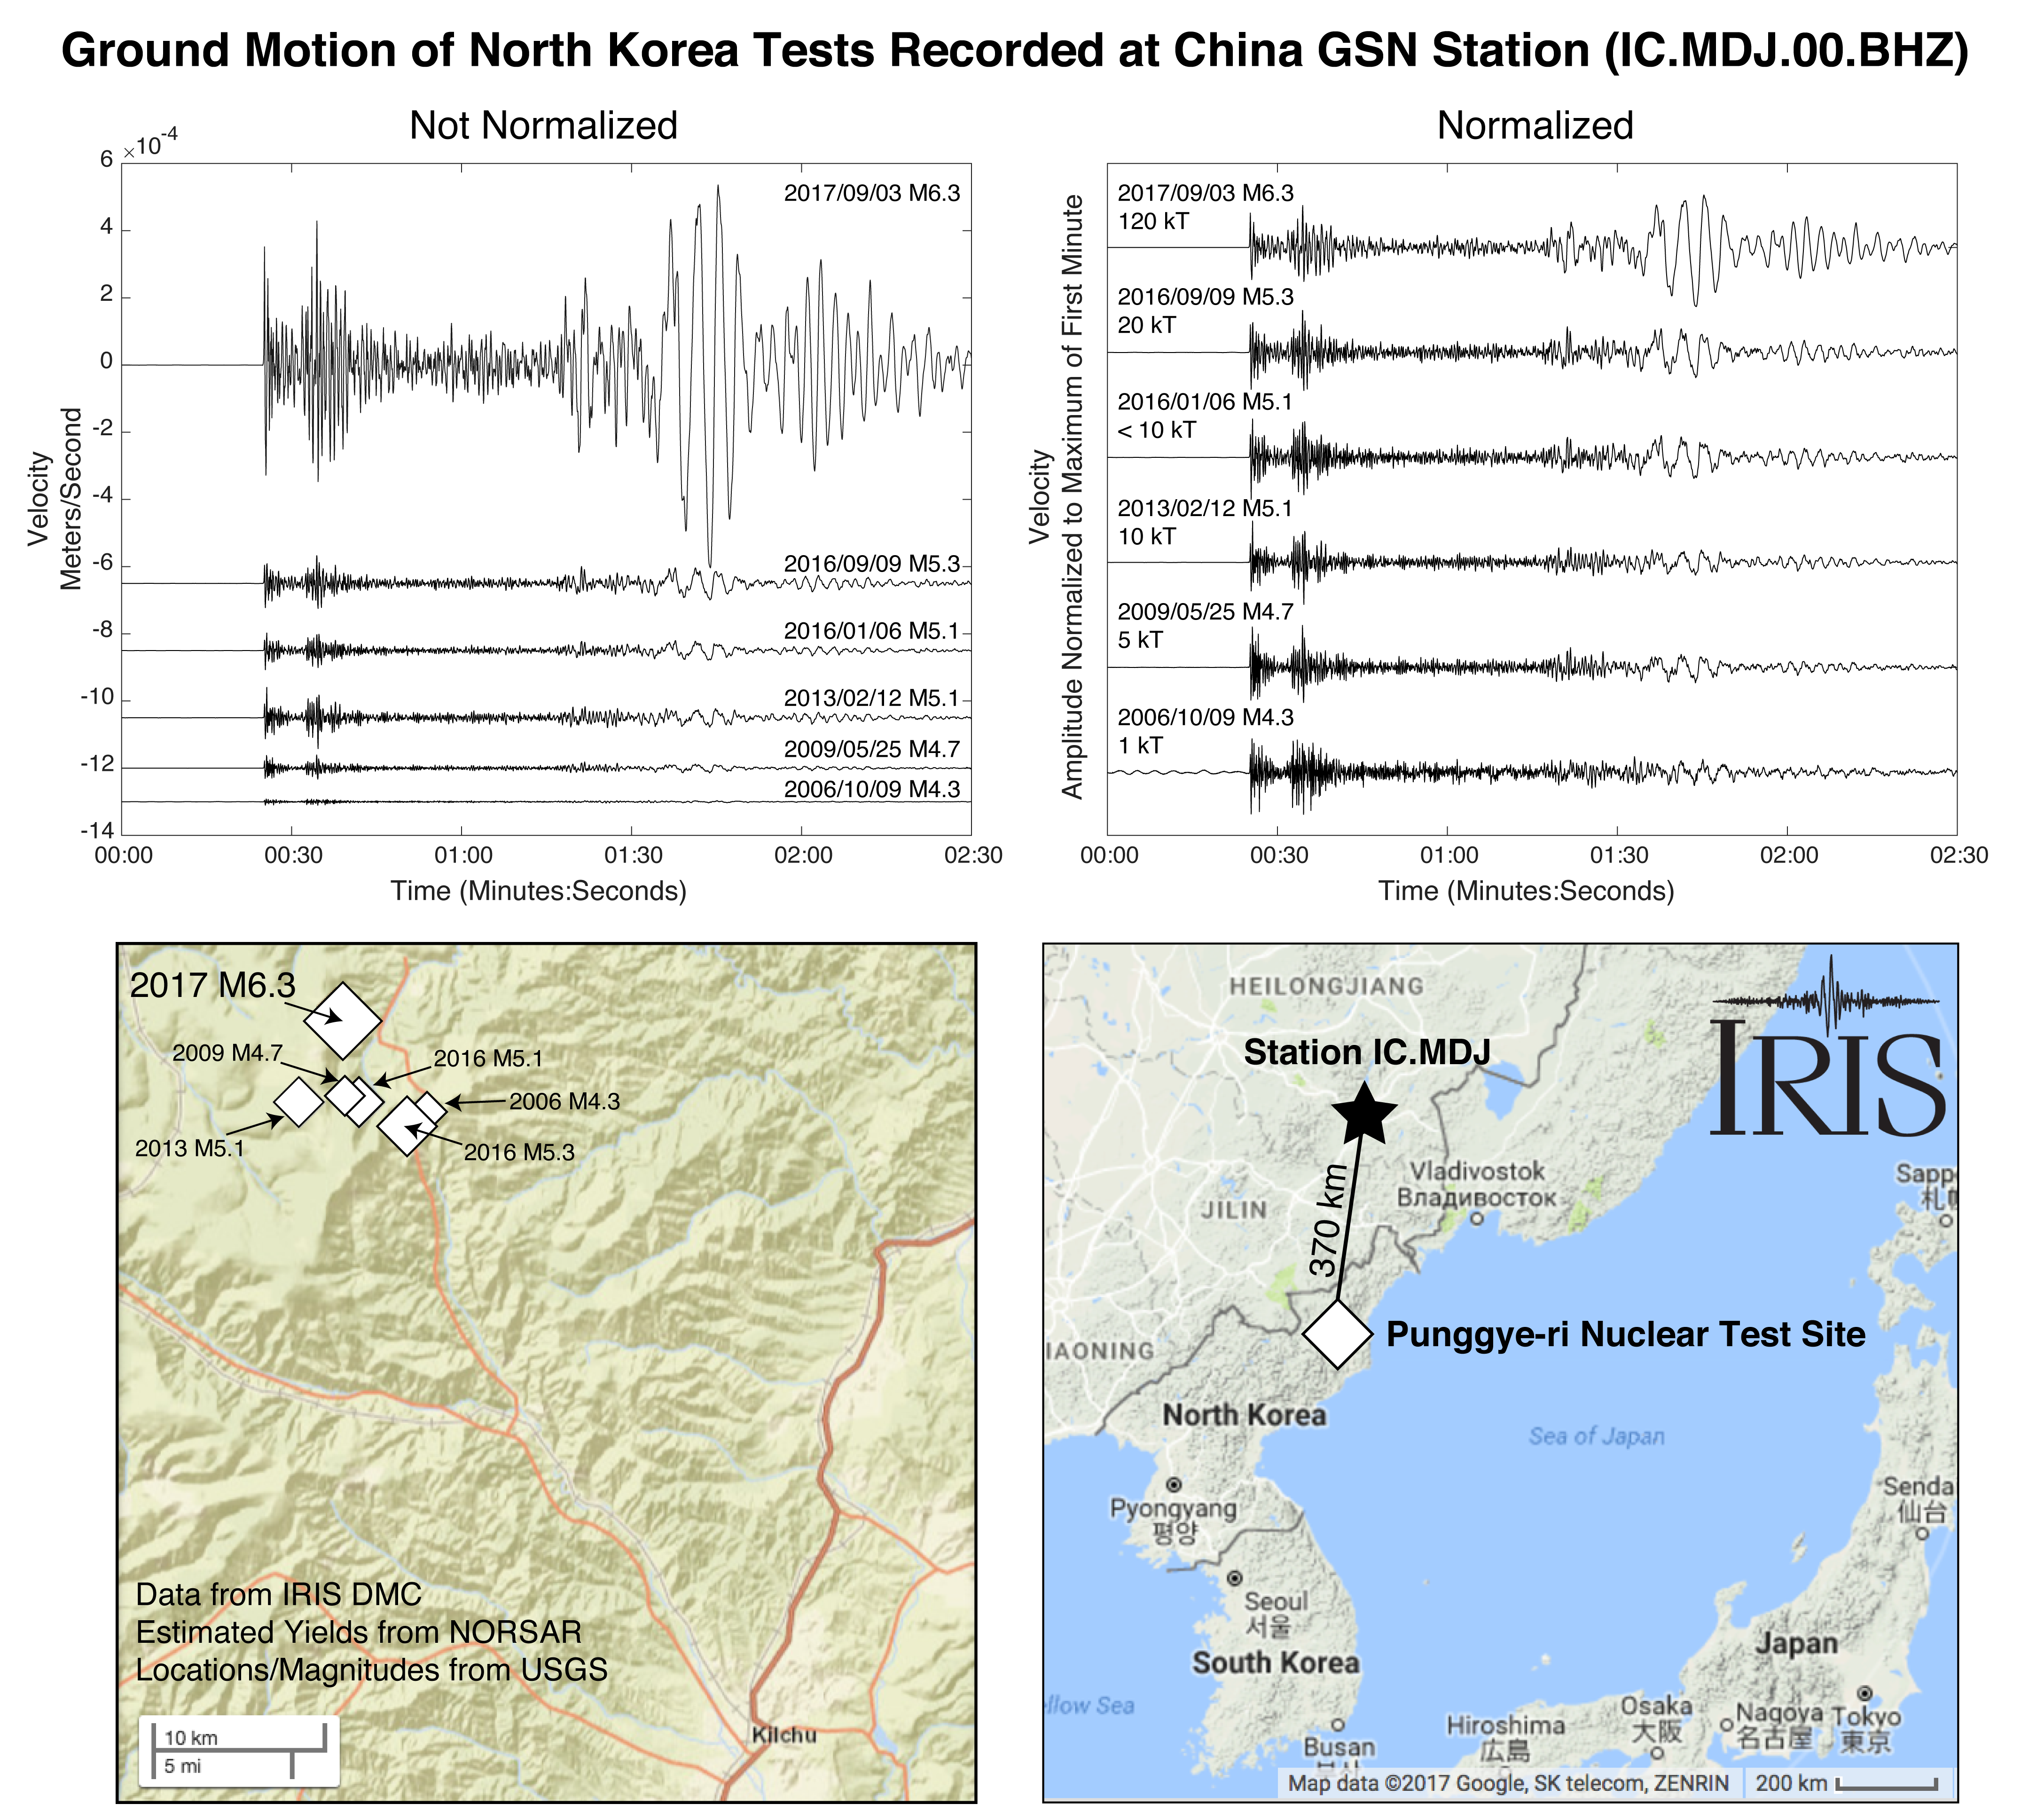 Comparison plot of the six most recent and largest North Korea tests